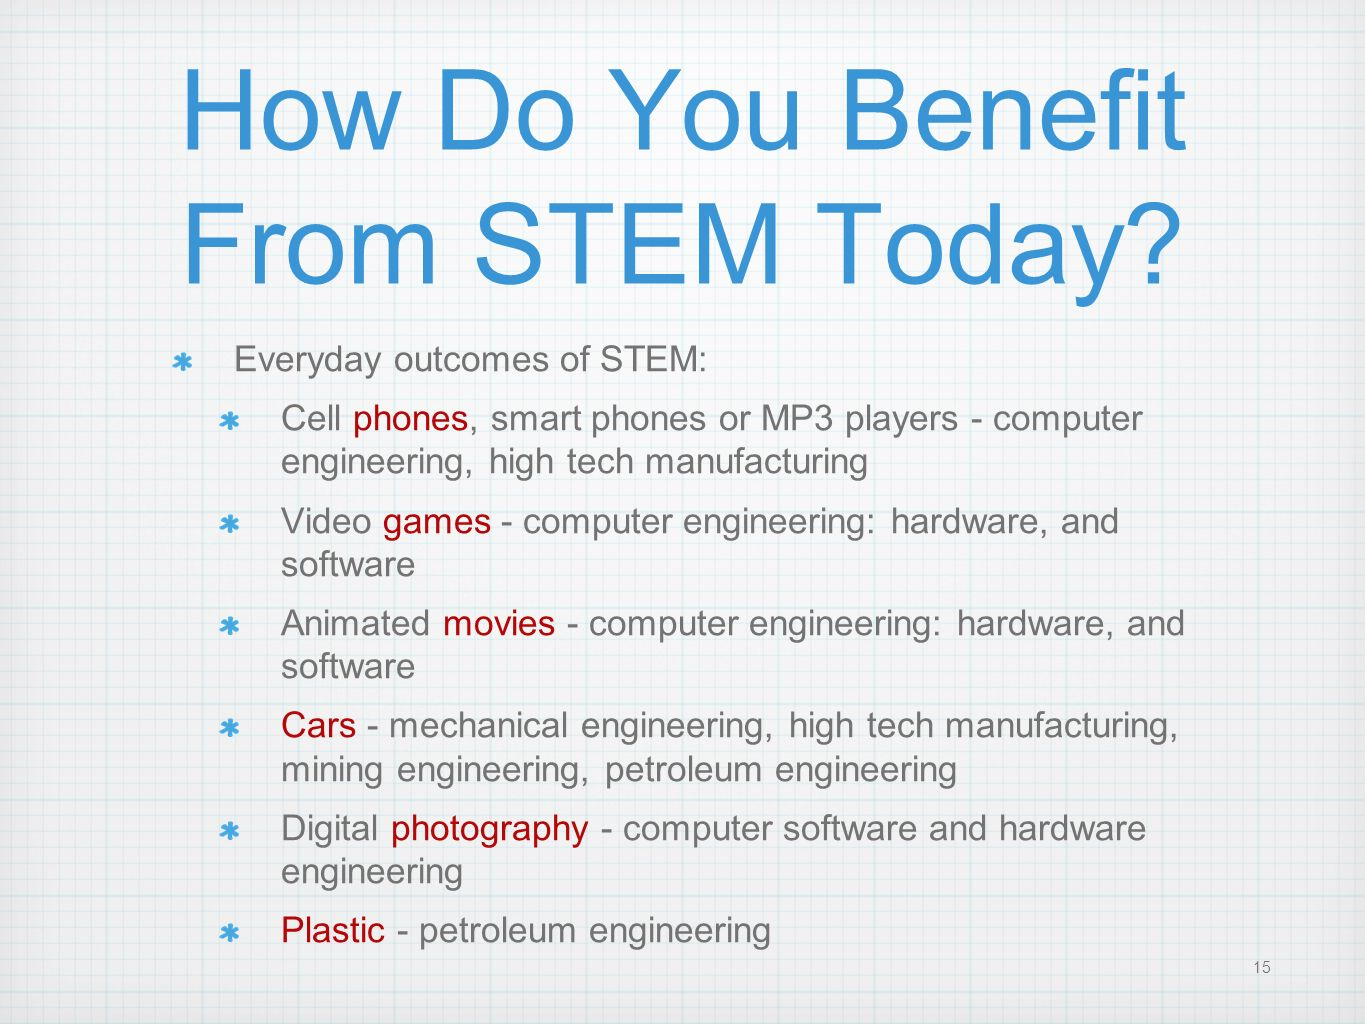 How Do You Benefit From STEM Today